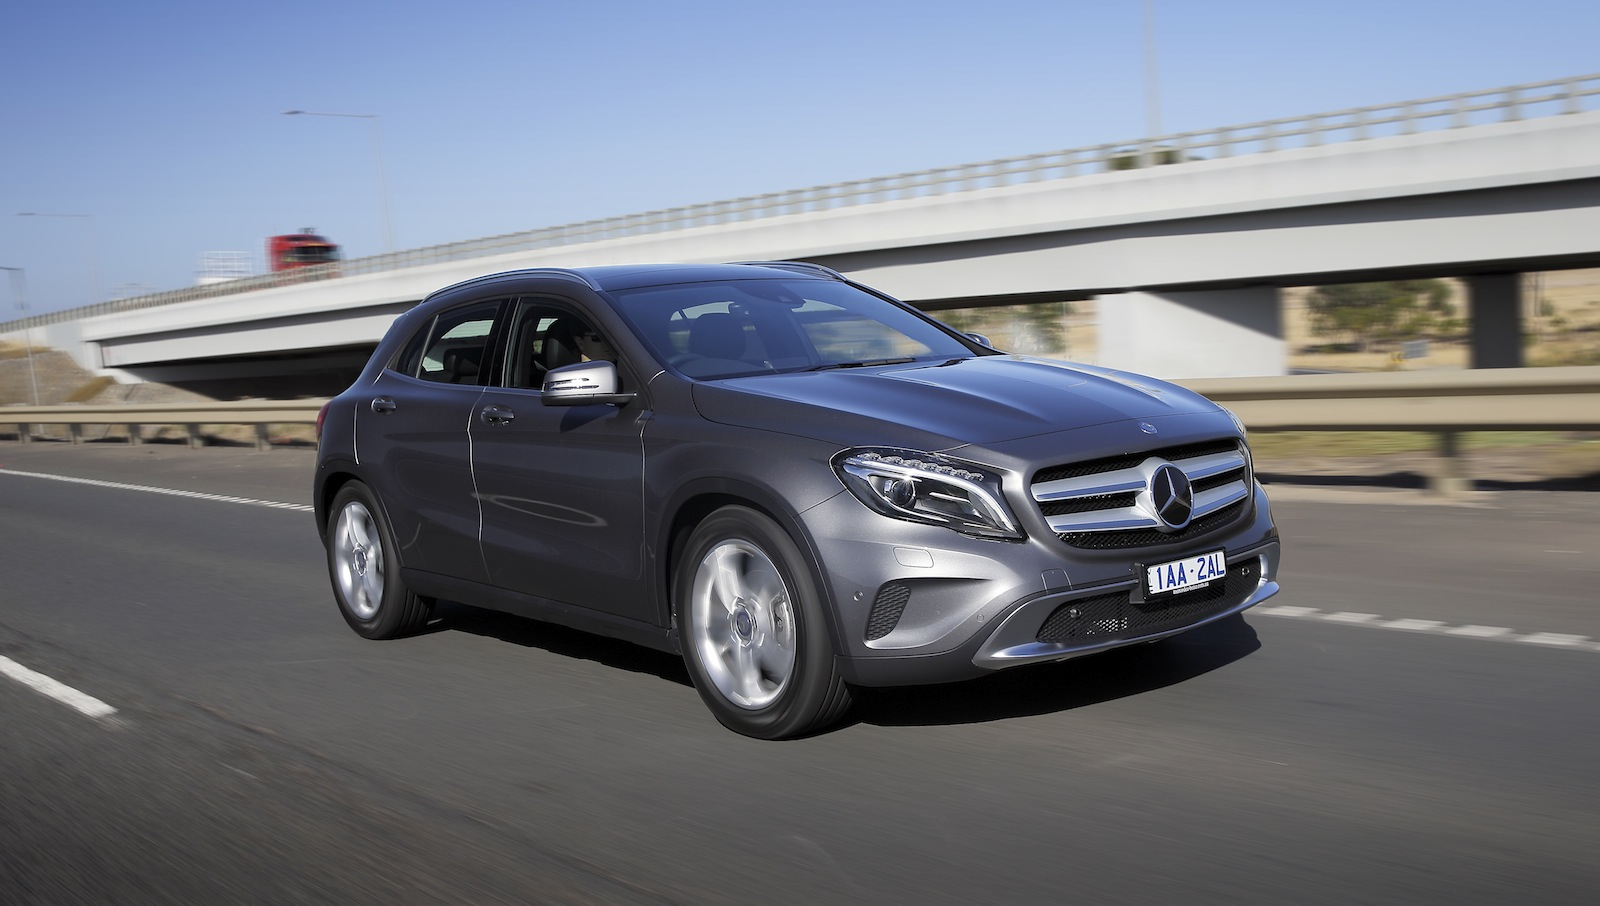 Mercedes-benz cdi photo - 10